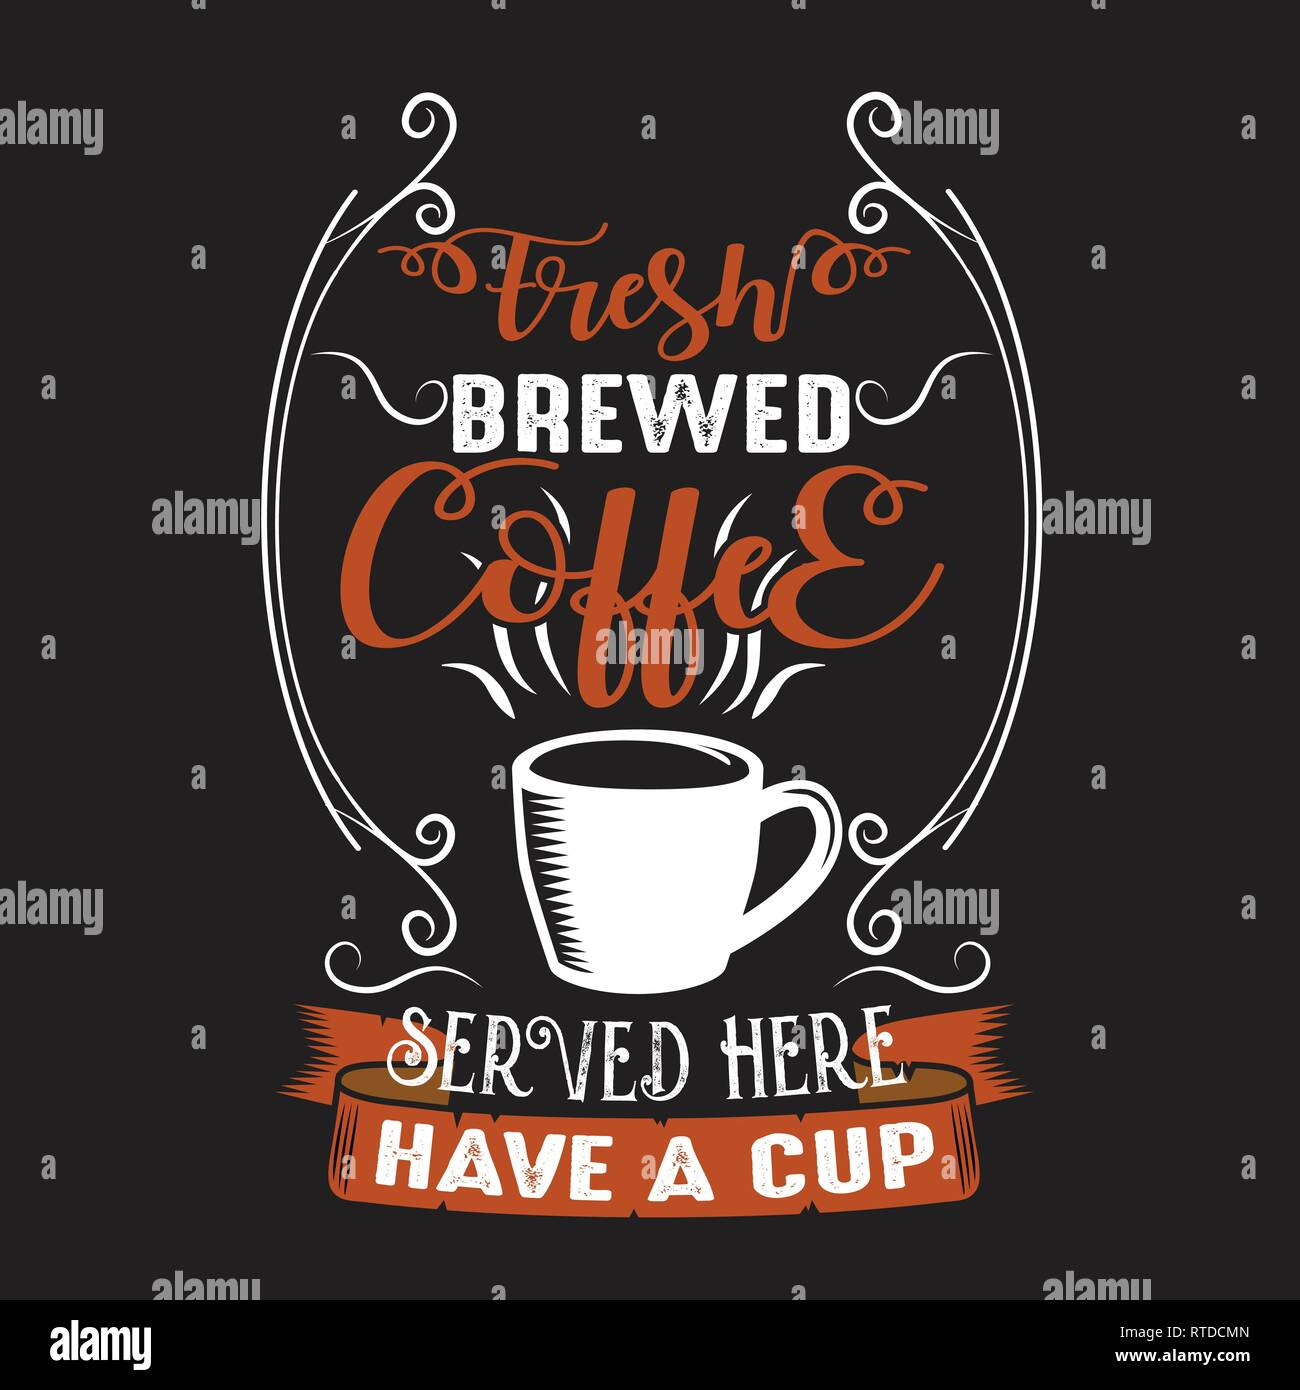 Coffee Quote Fresh Brewed Coffee Served Here Have A Cup Stock Vector Image Art Alamy